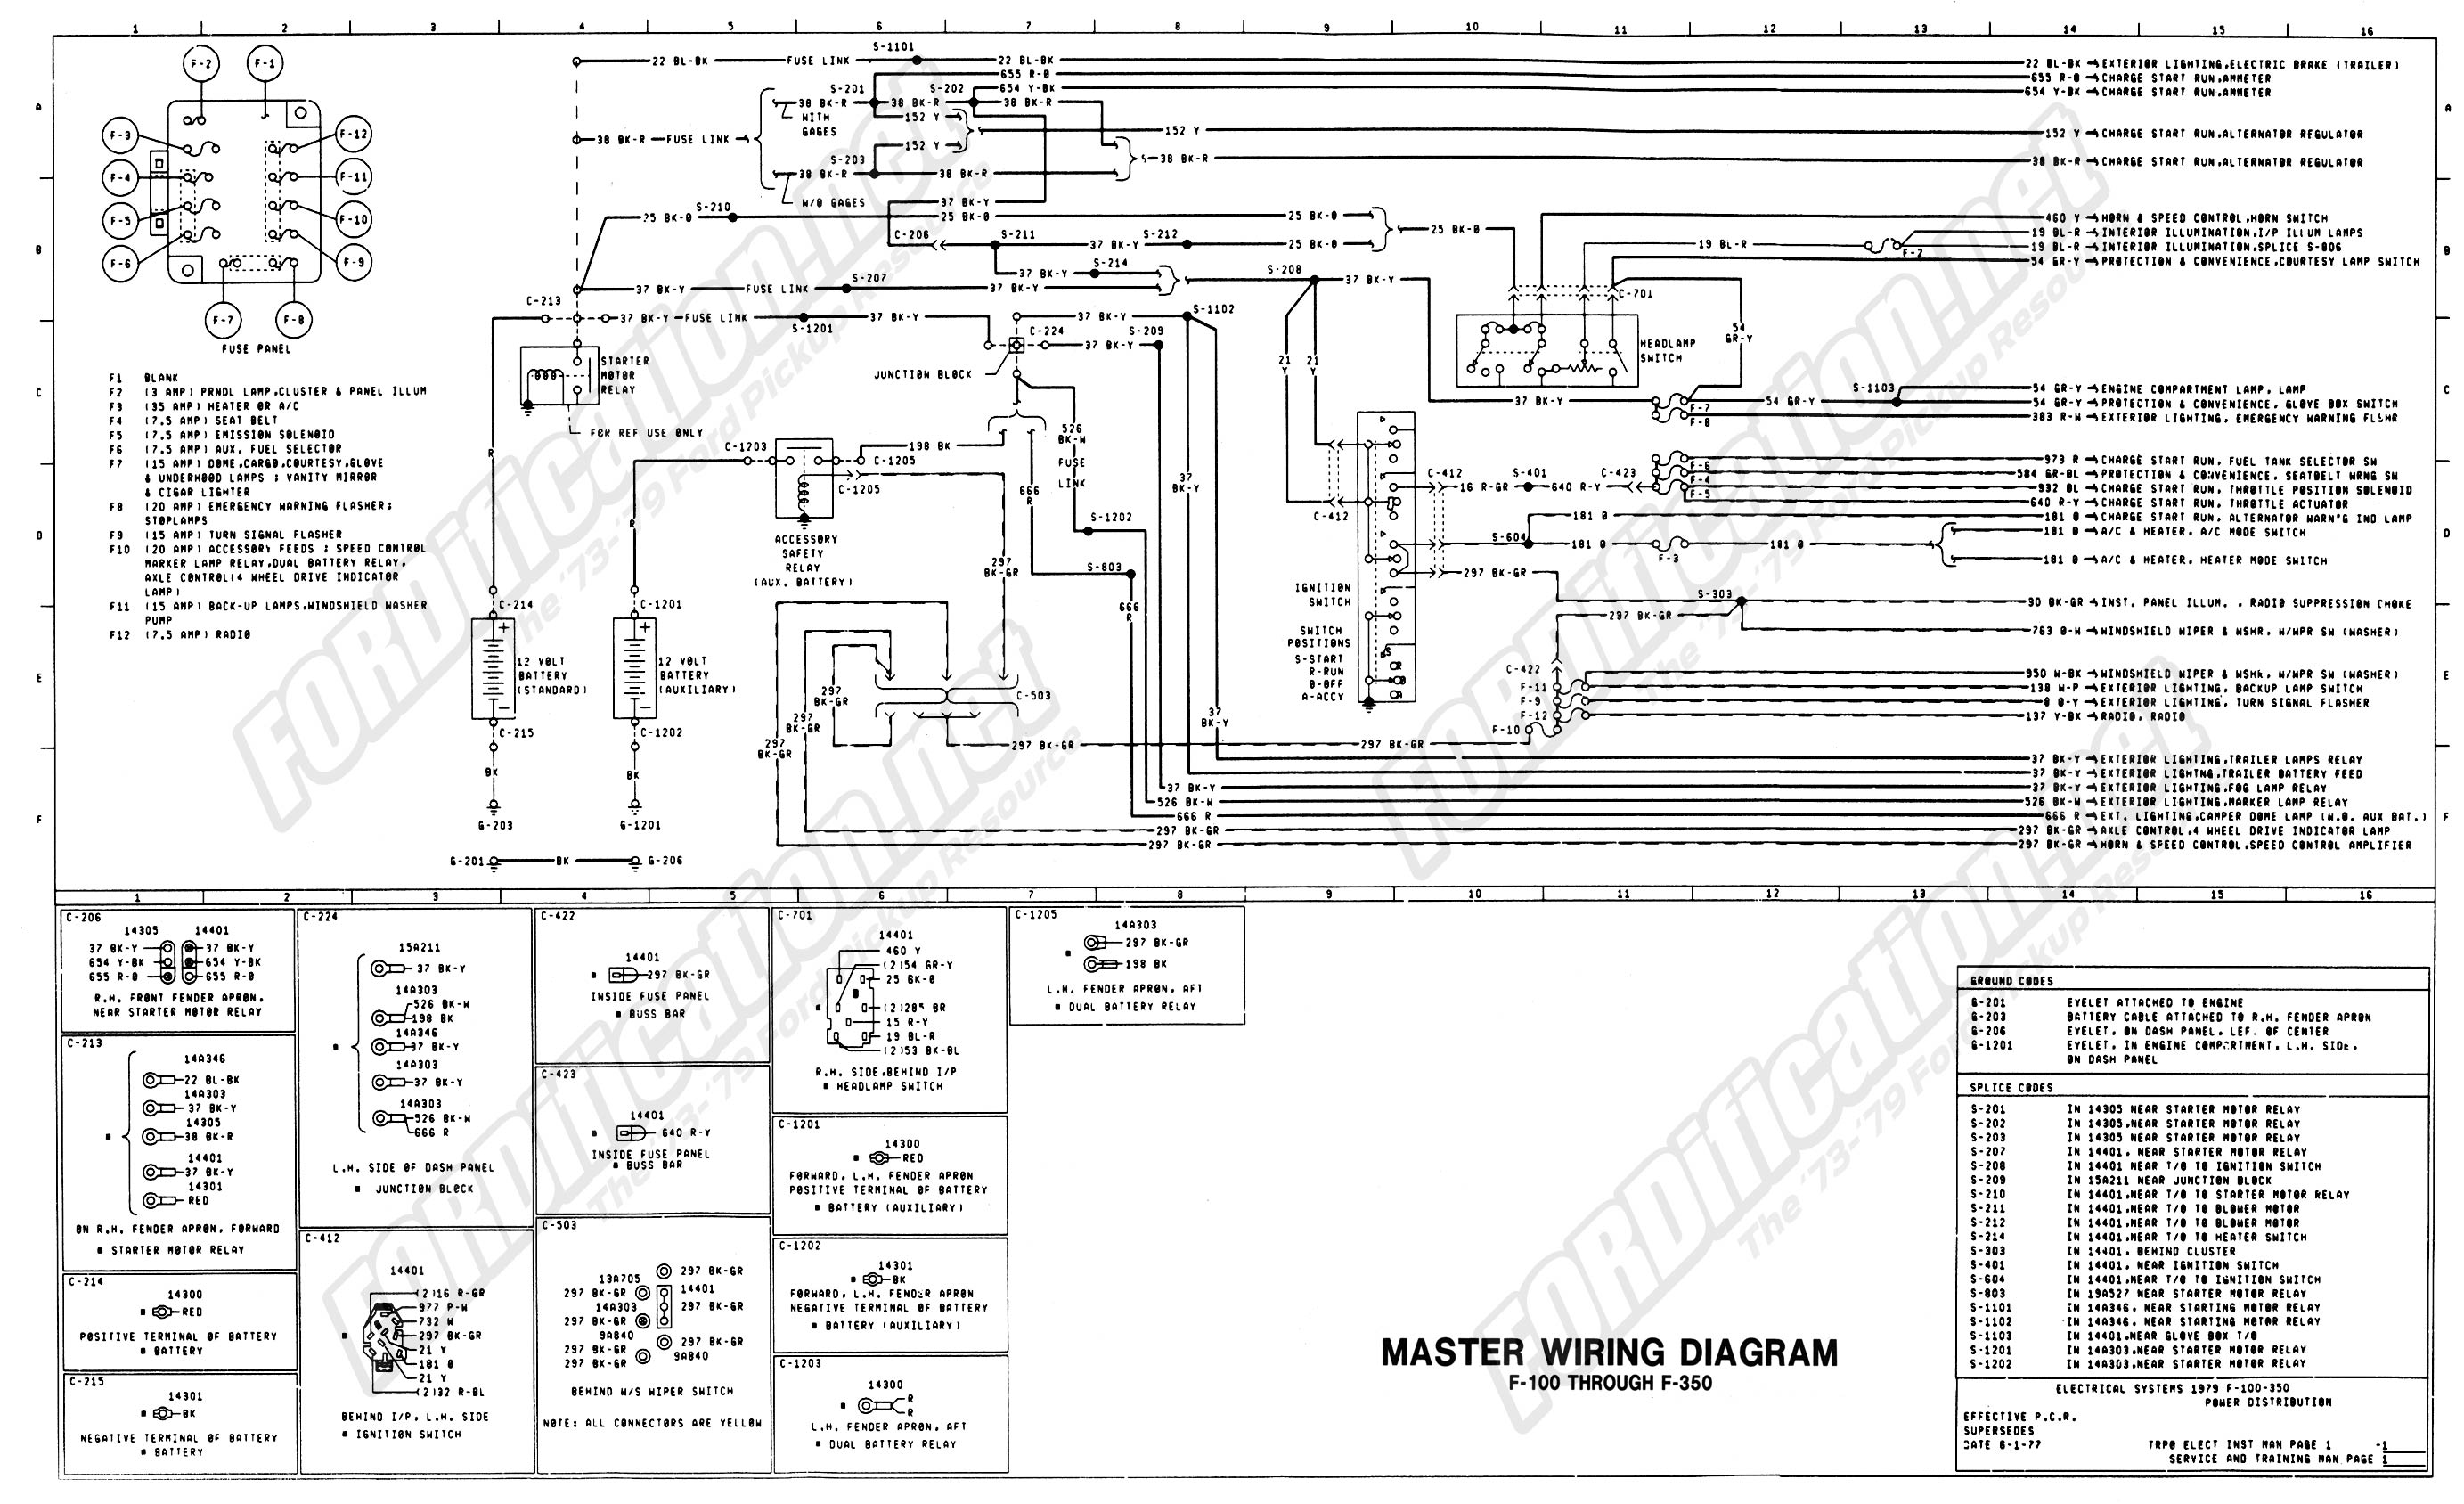 wiring_79master_1of9 1973 1979 ford truck wiring diagrams & schematics fordification net 1979 ford bronco fuse box diagram at fashall.co